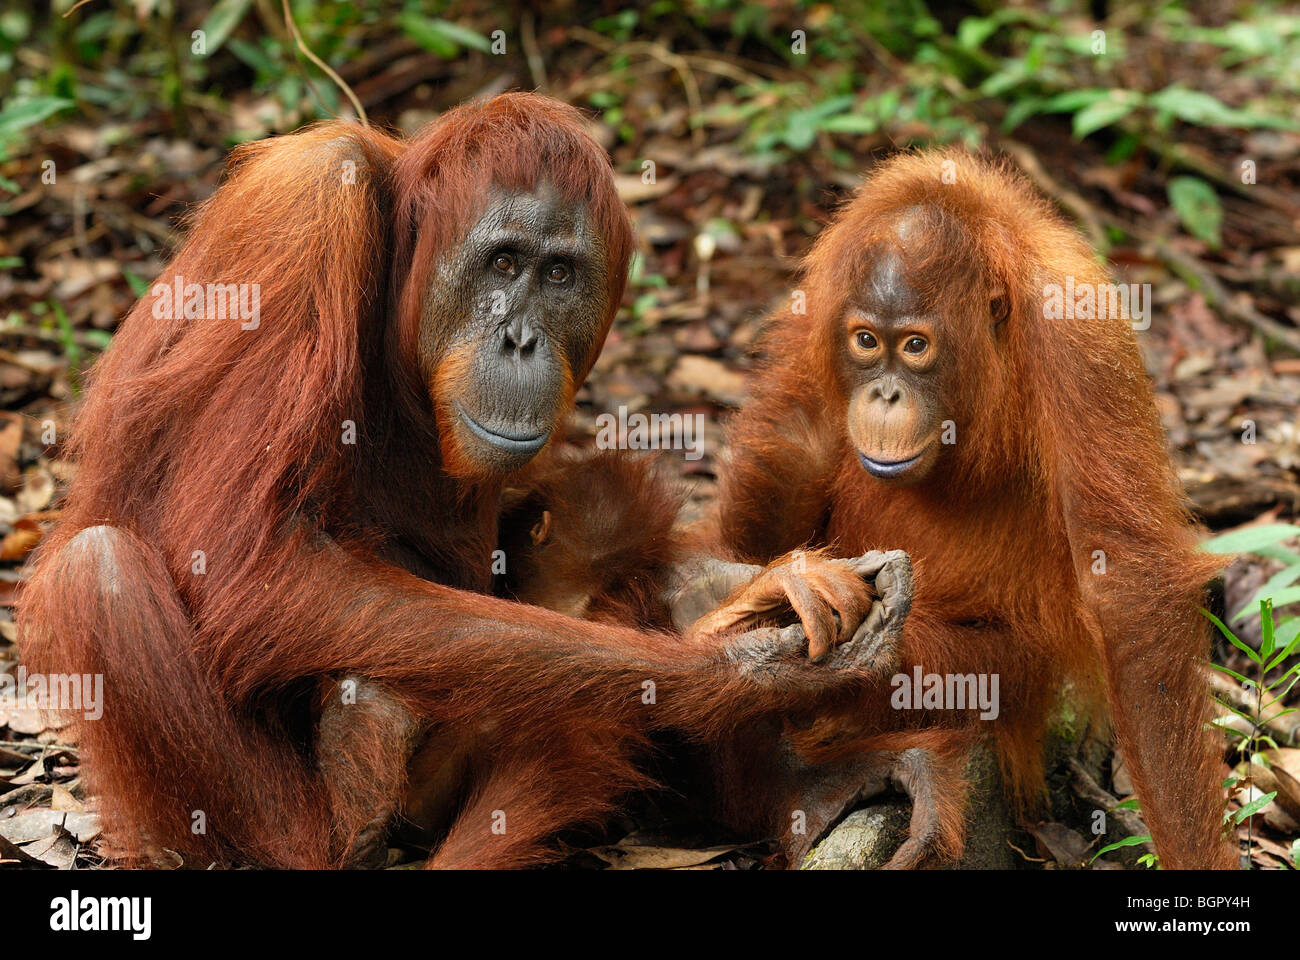 Borneo Orangutan (Pongo pygmaeus), female with a baby, Camp Leaky, Tanjung Puting National Park, Kalimantan, Borneo, - Stock Image